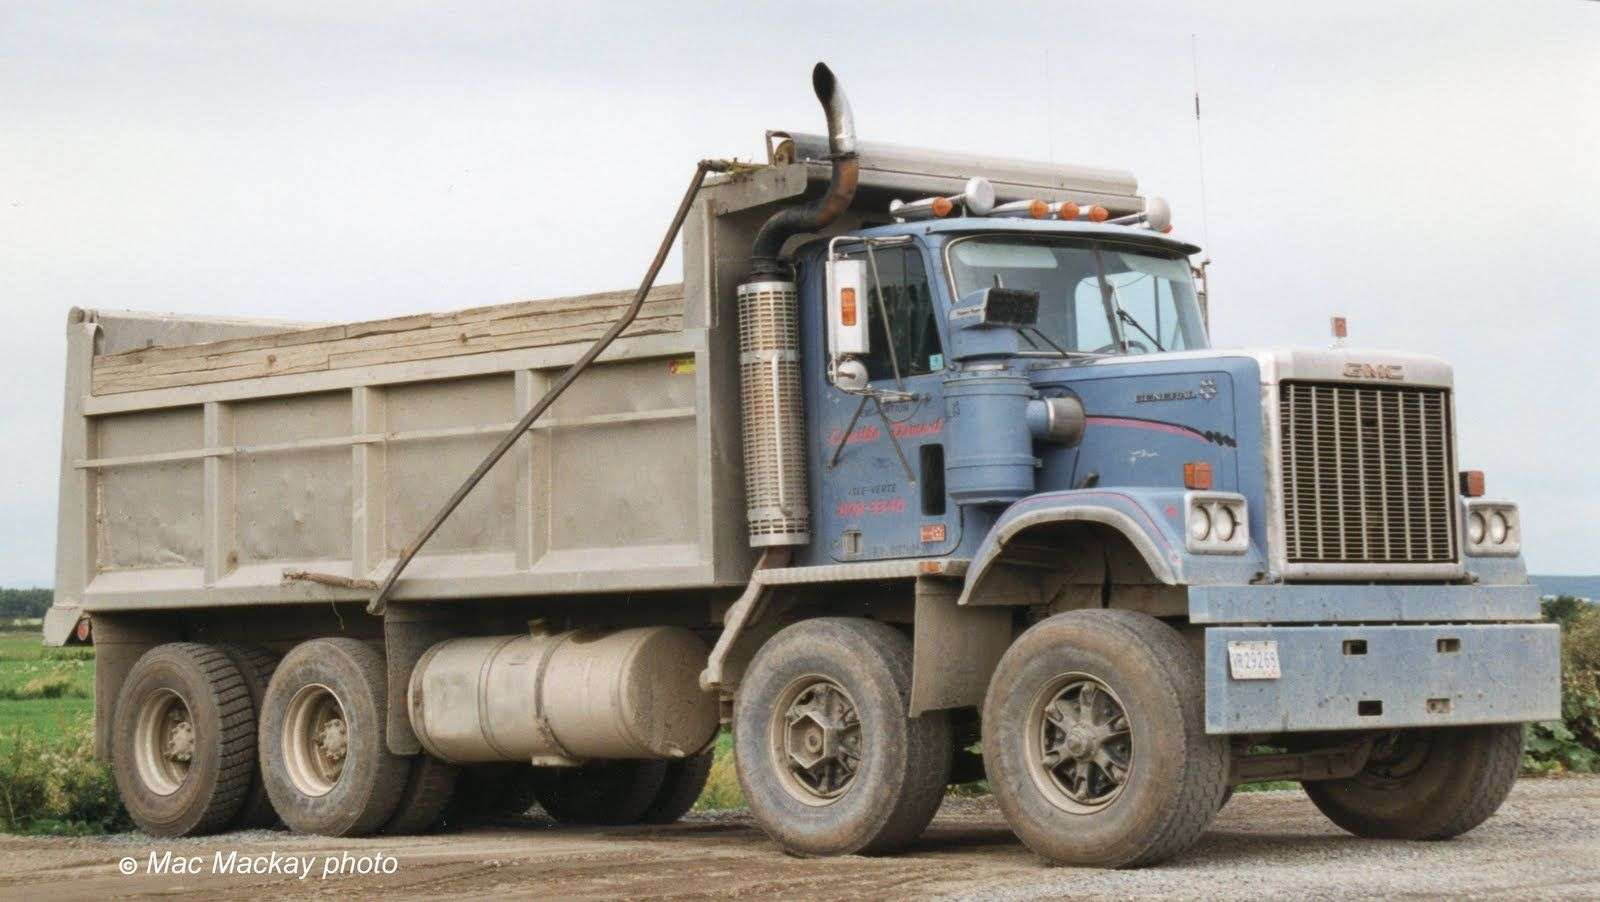 Gmc General Duel Steer Dump Truck Trucks Dump Trucks Built Truck